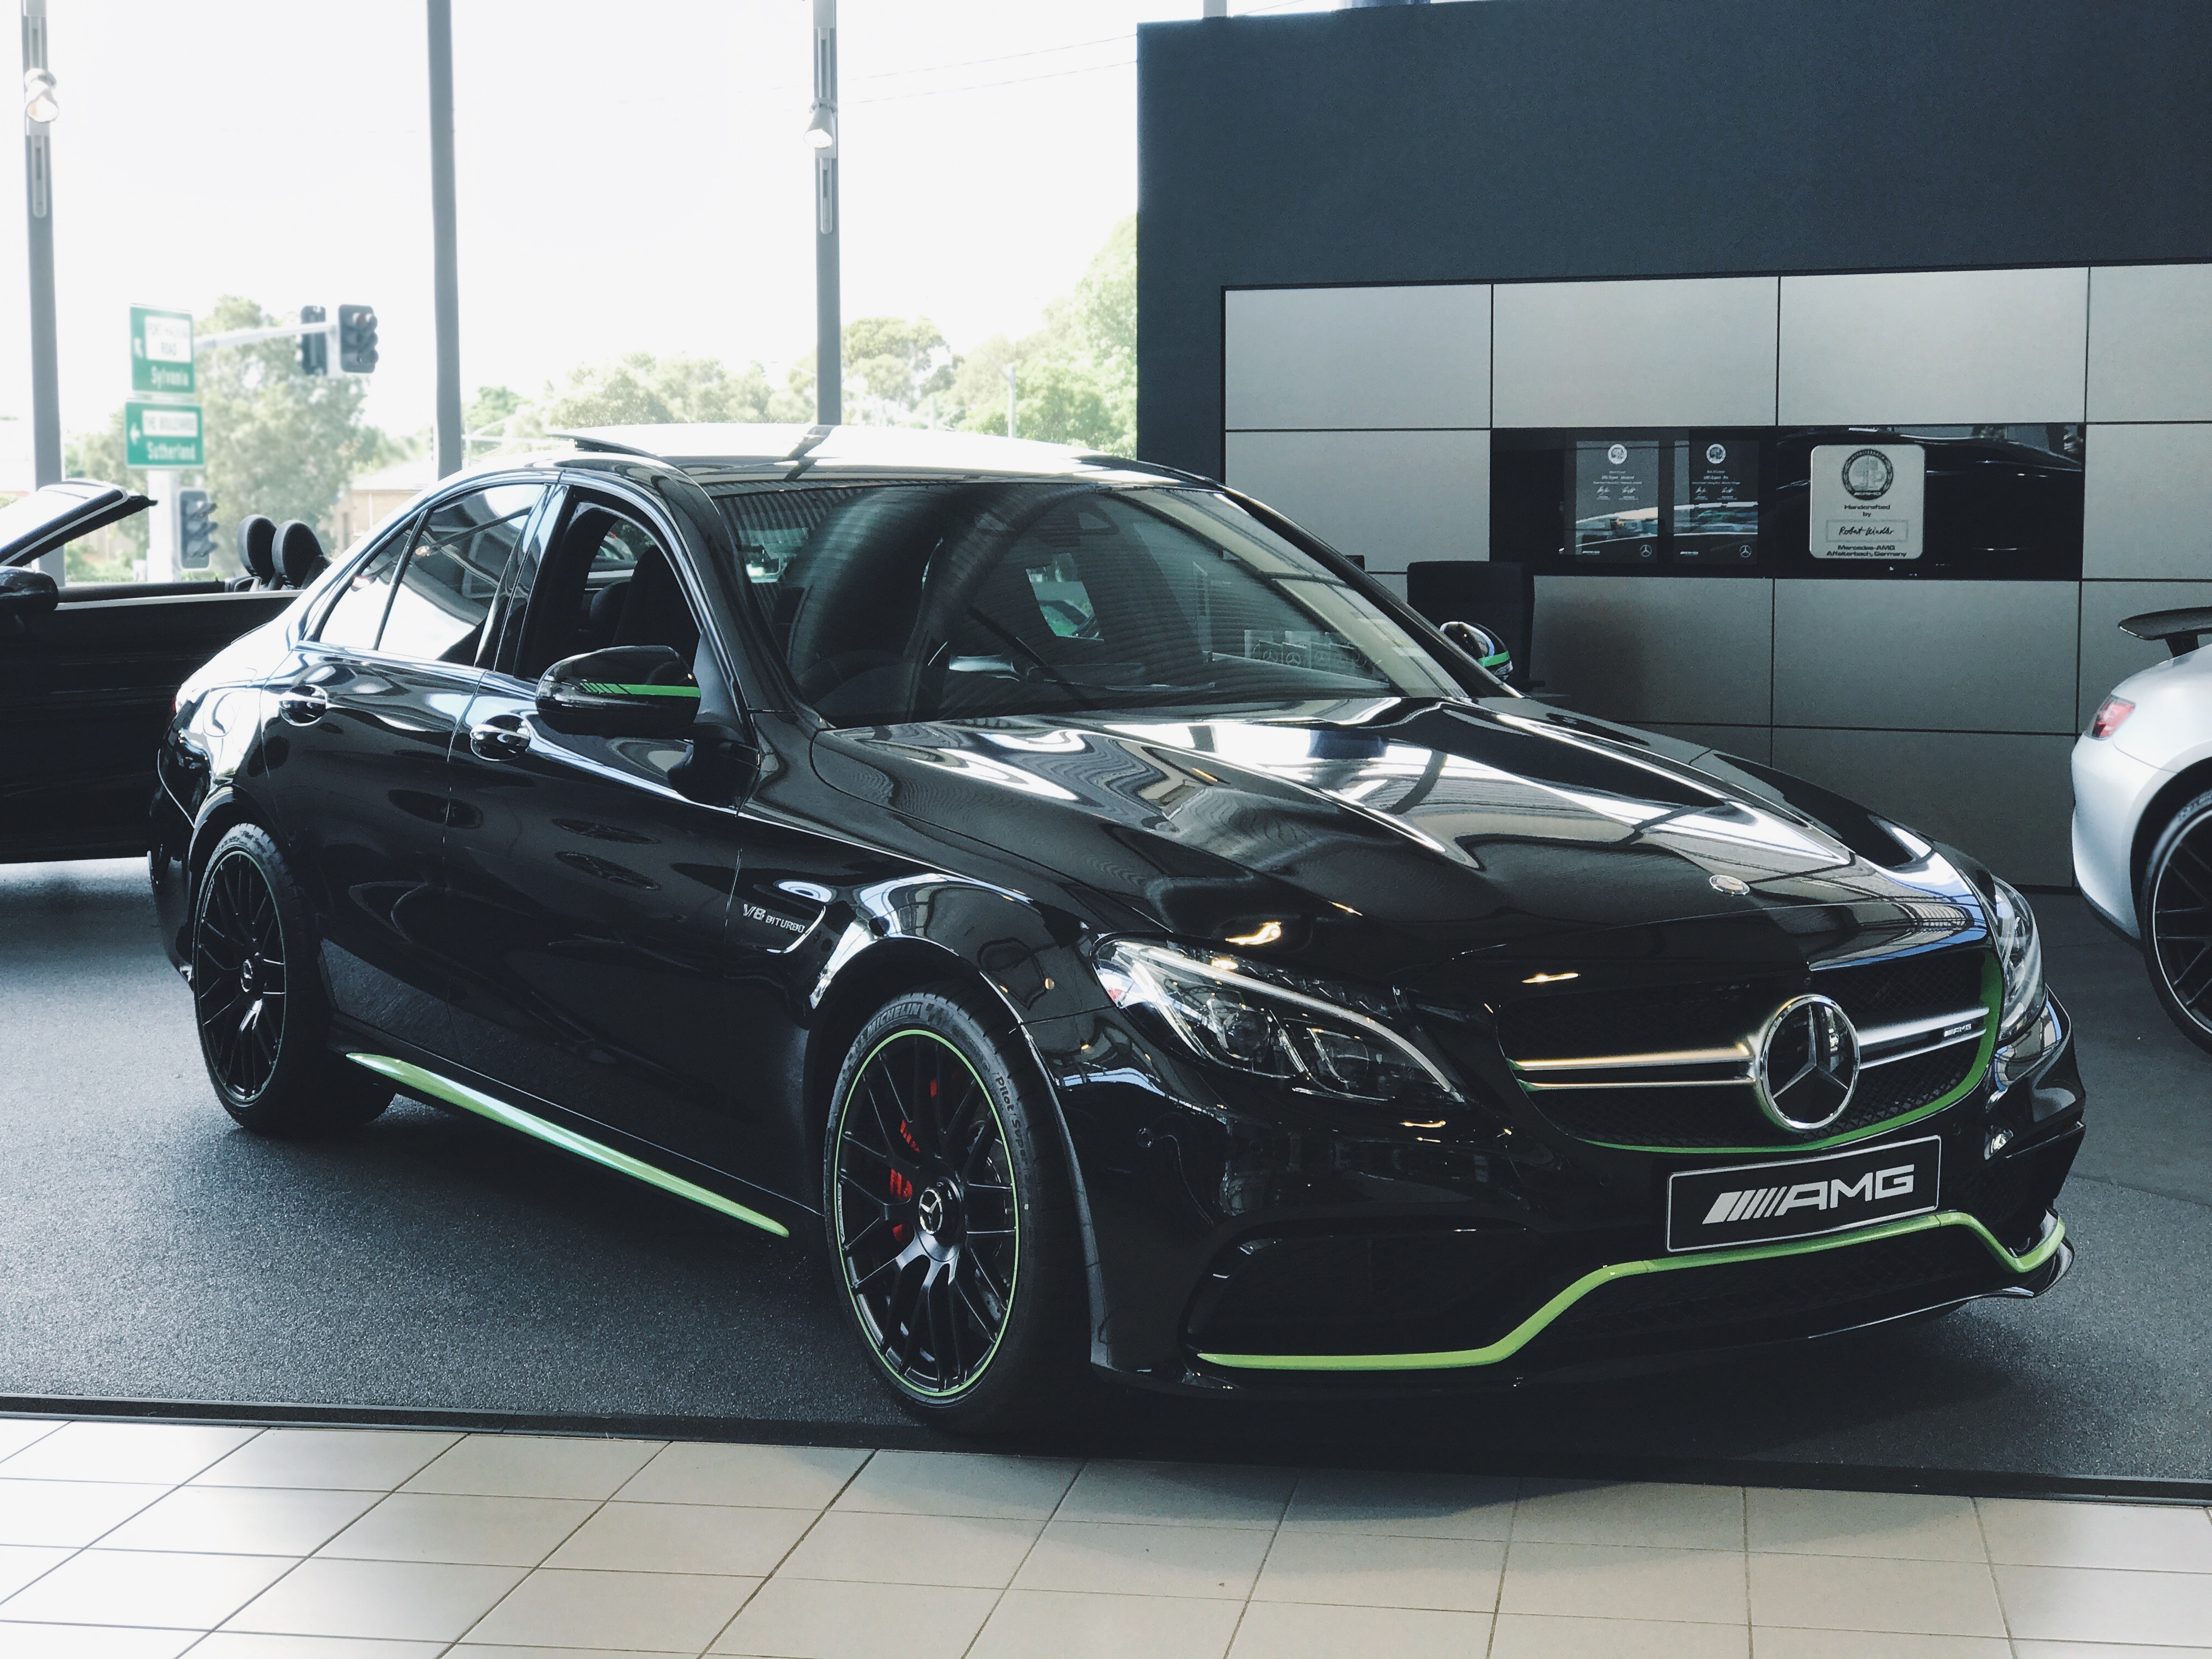 Mercedes benz limited edition amg c63s spotlight tynan for Mercedes benz limited edition